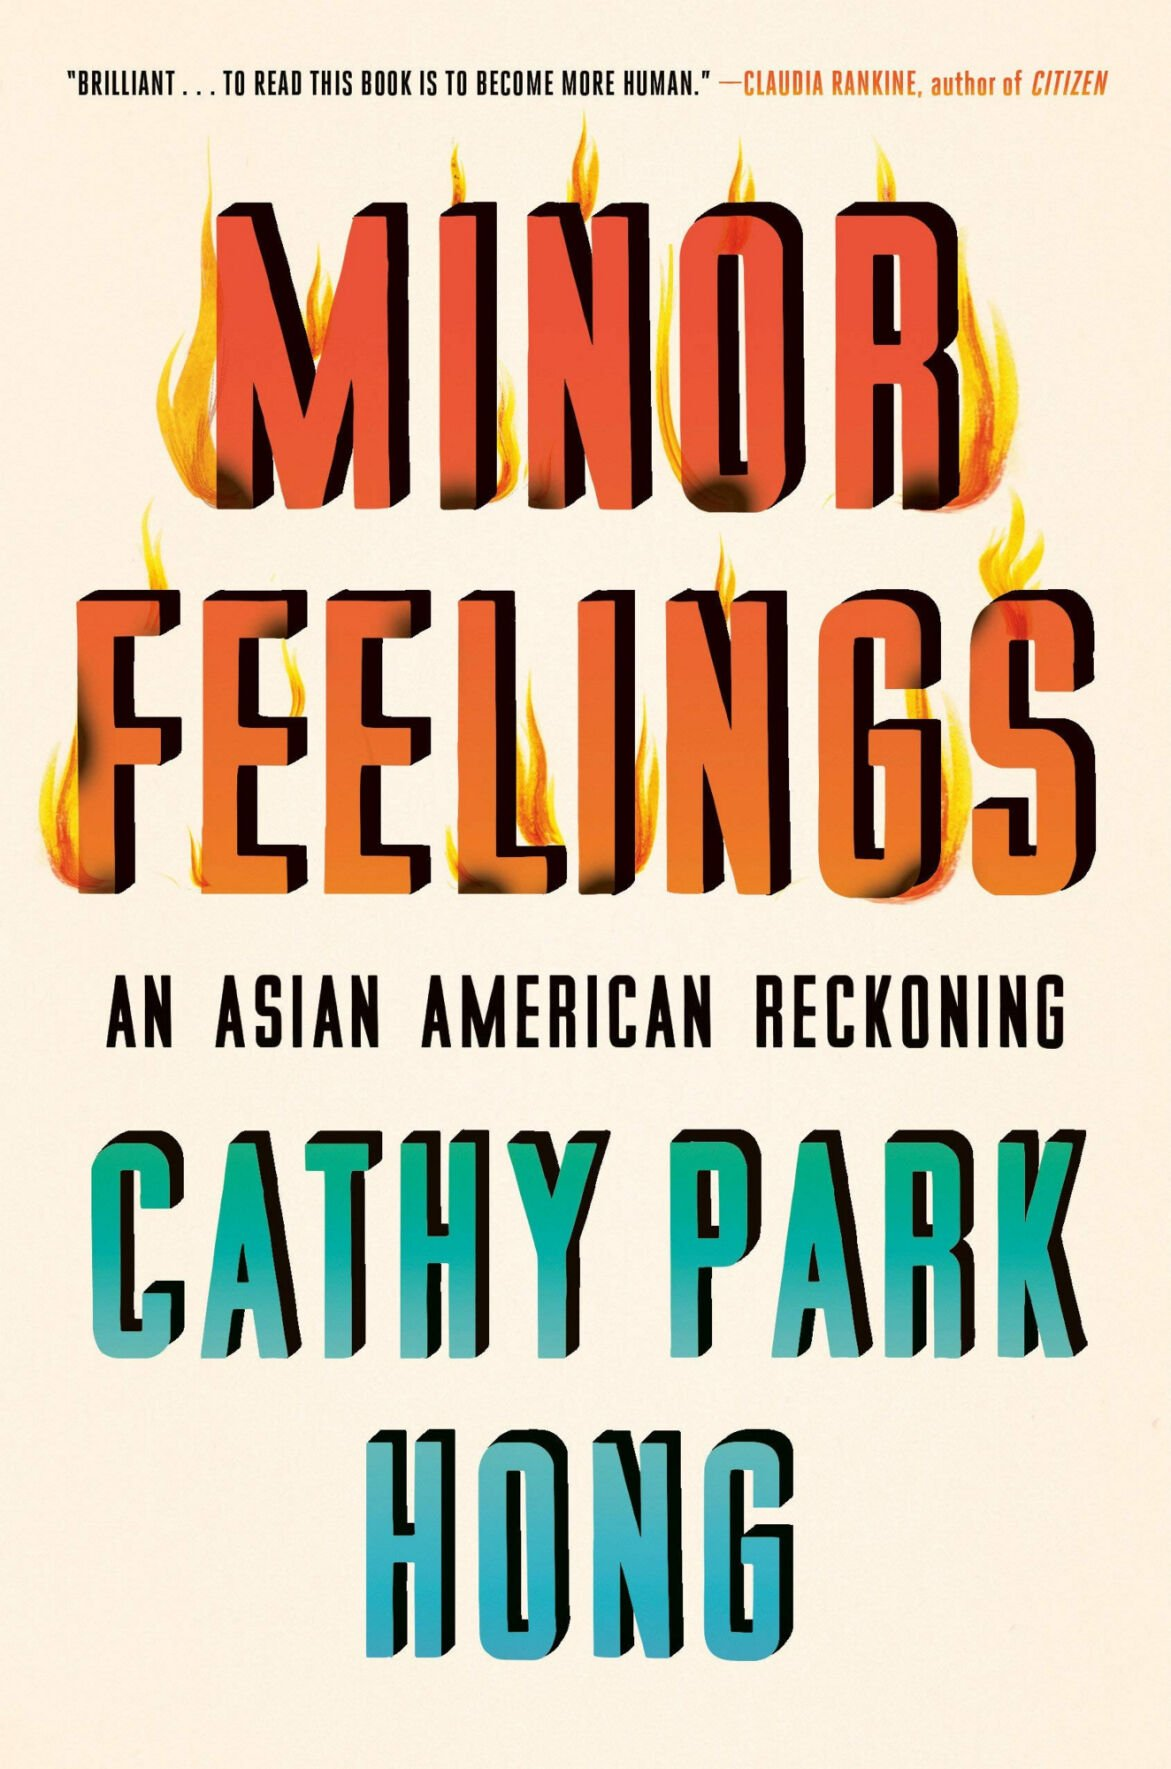 15 books learn more about Asian American experiences